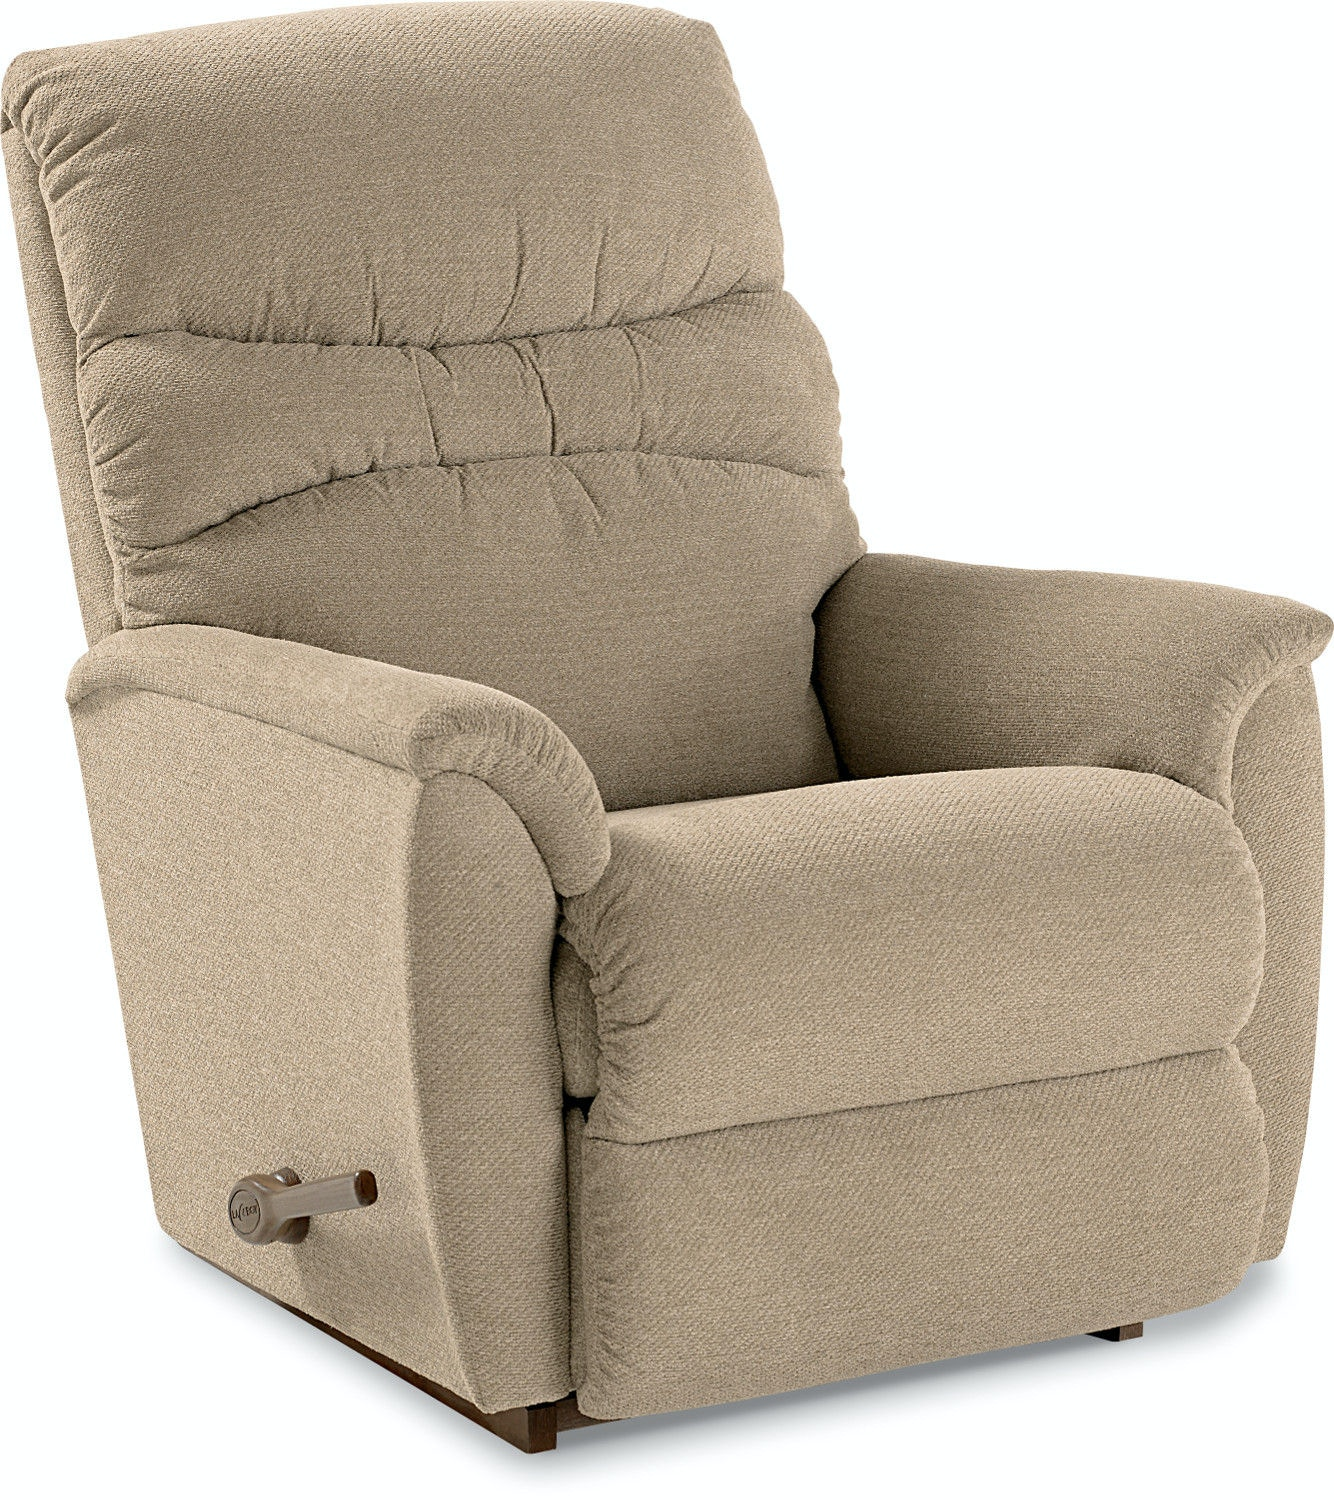 Good La Z Boy Living Room RECLINA ROCKER® Recliner 010508   Andrews Furniture    Abilene, TX